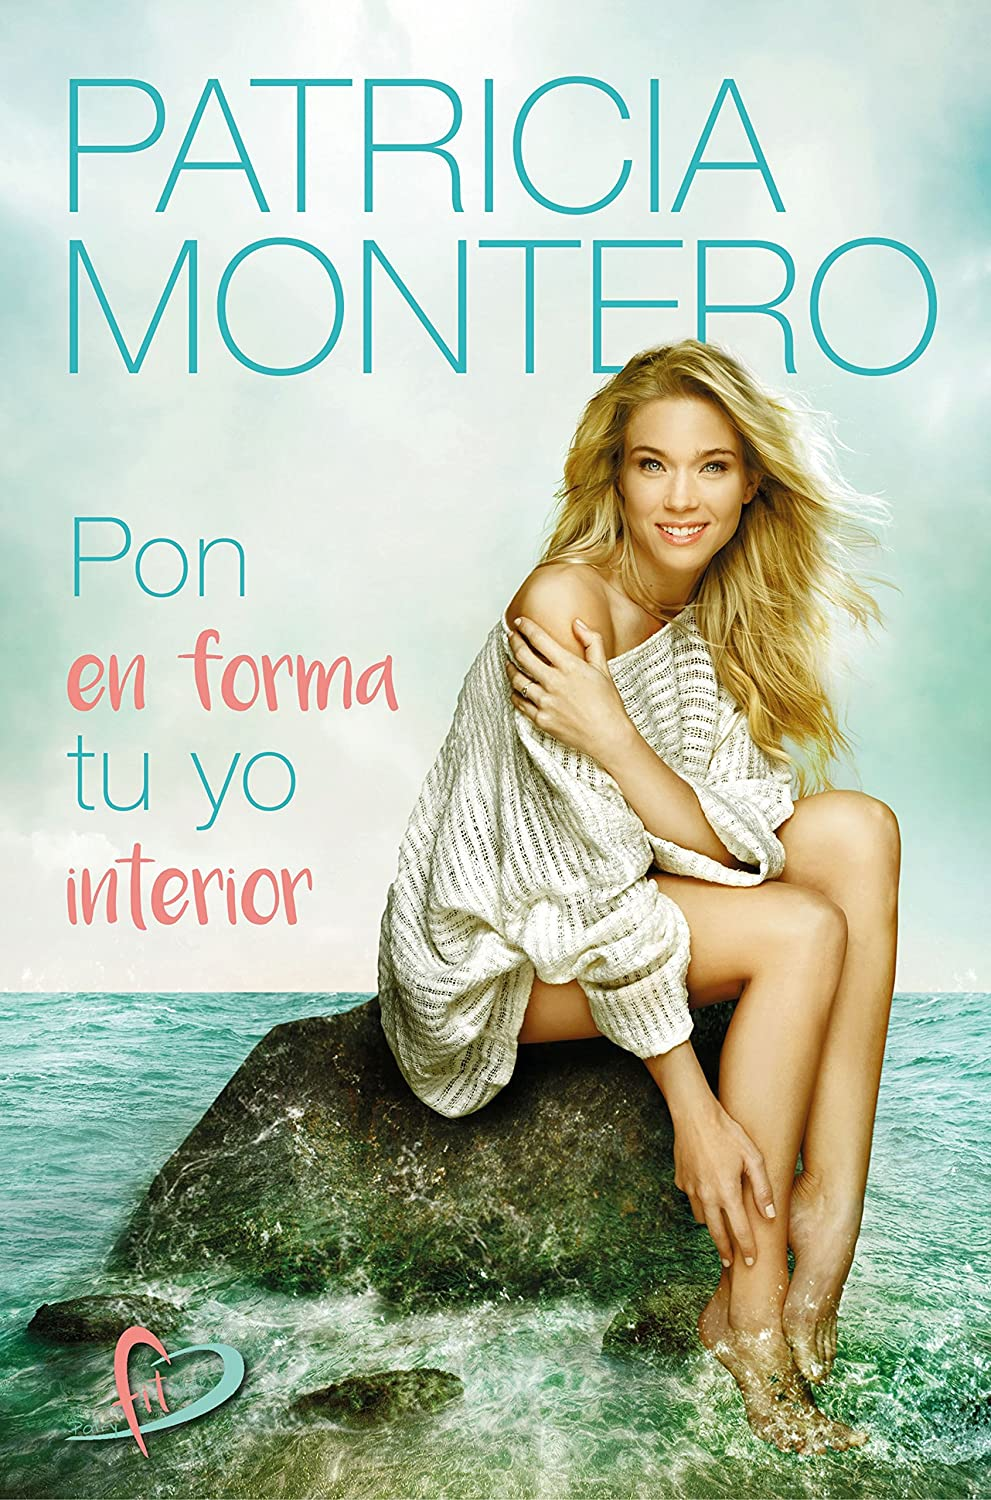 Pon en forma tu yo interior eBook: Montero, Patricia: Amazon.es ...